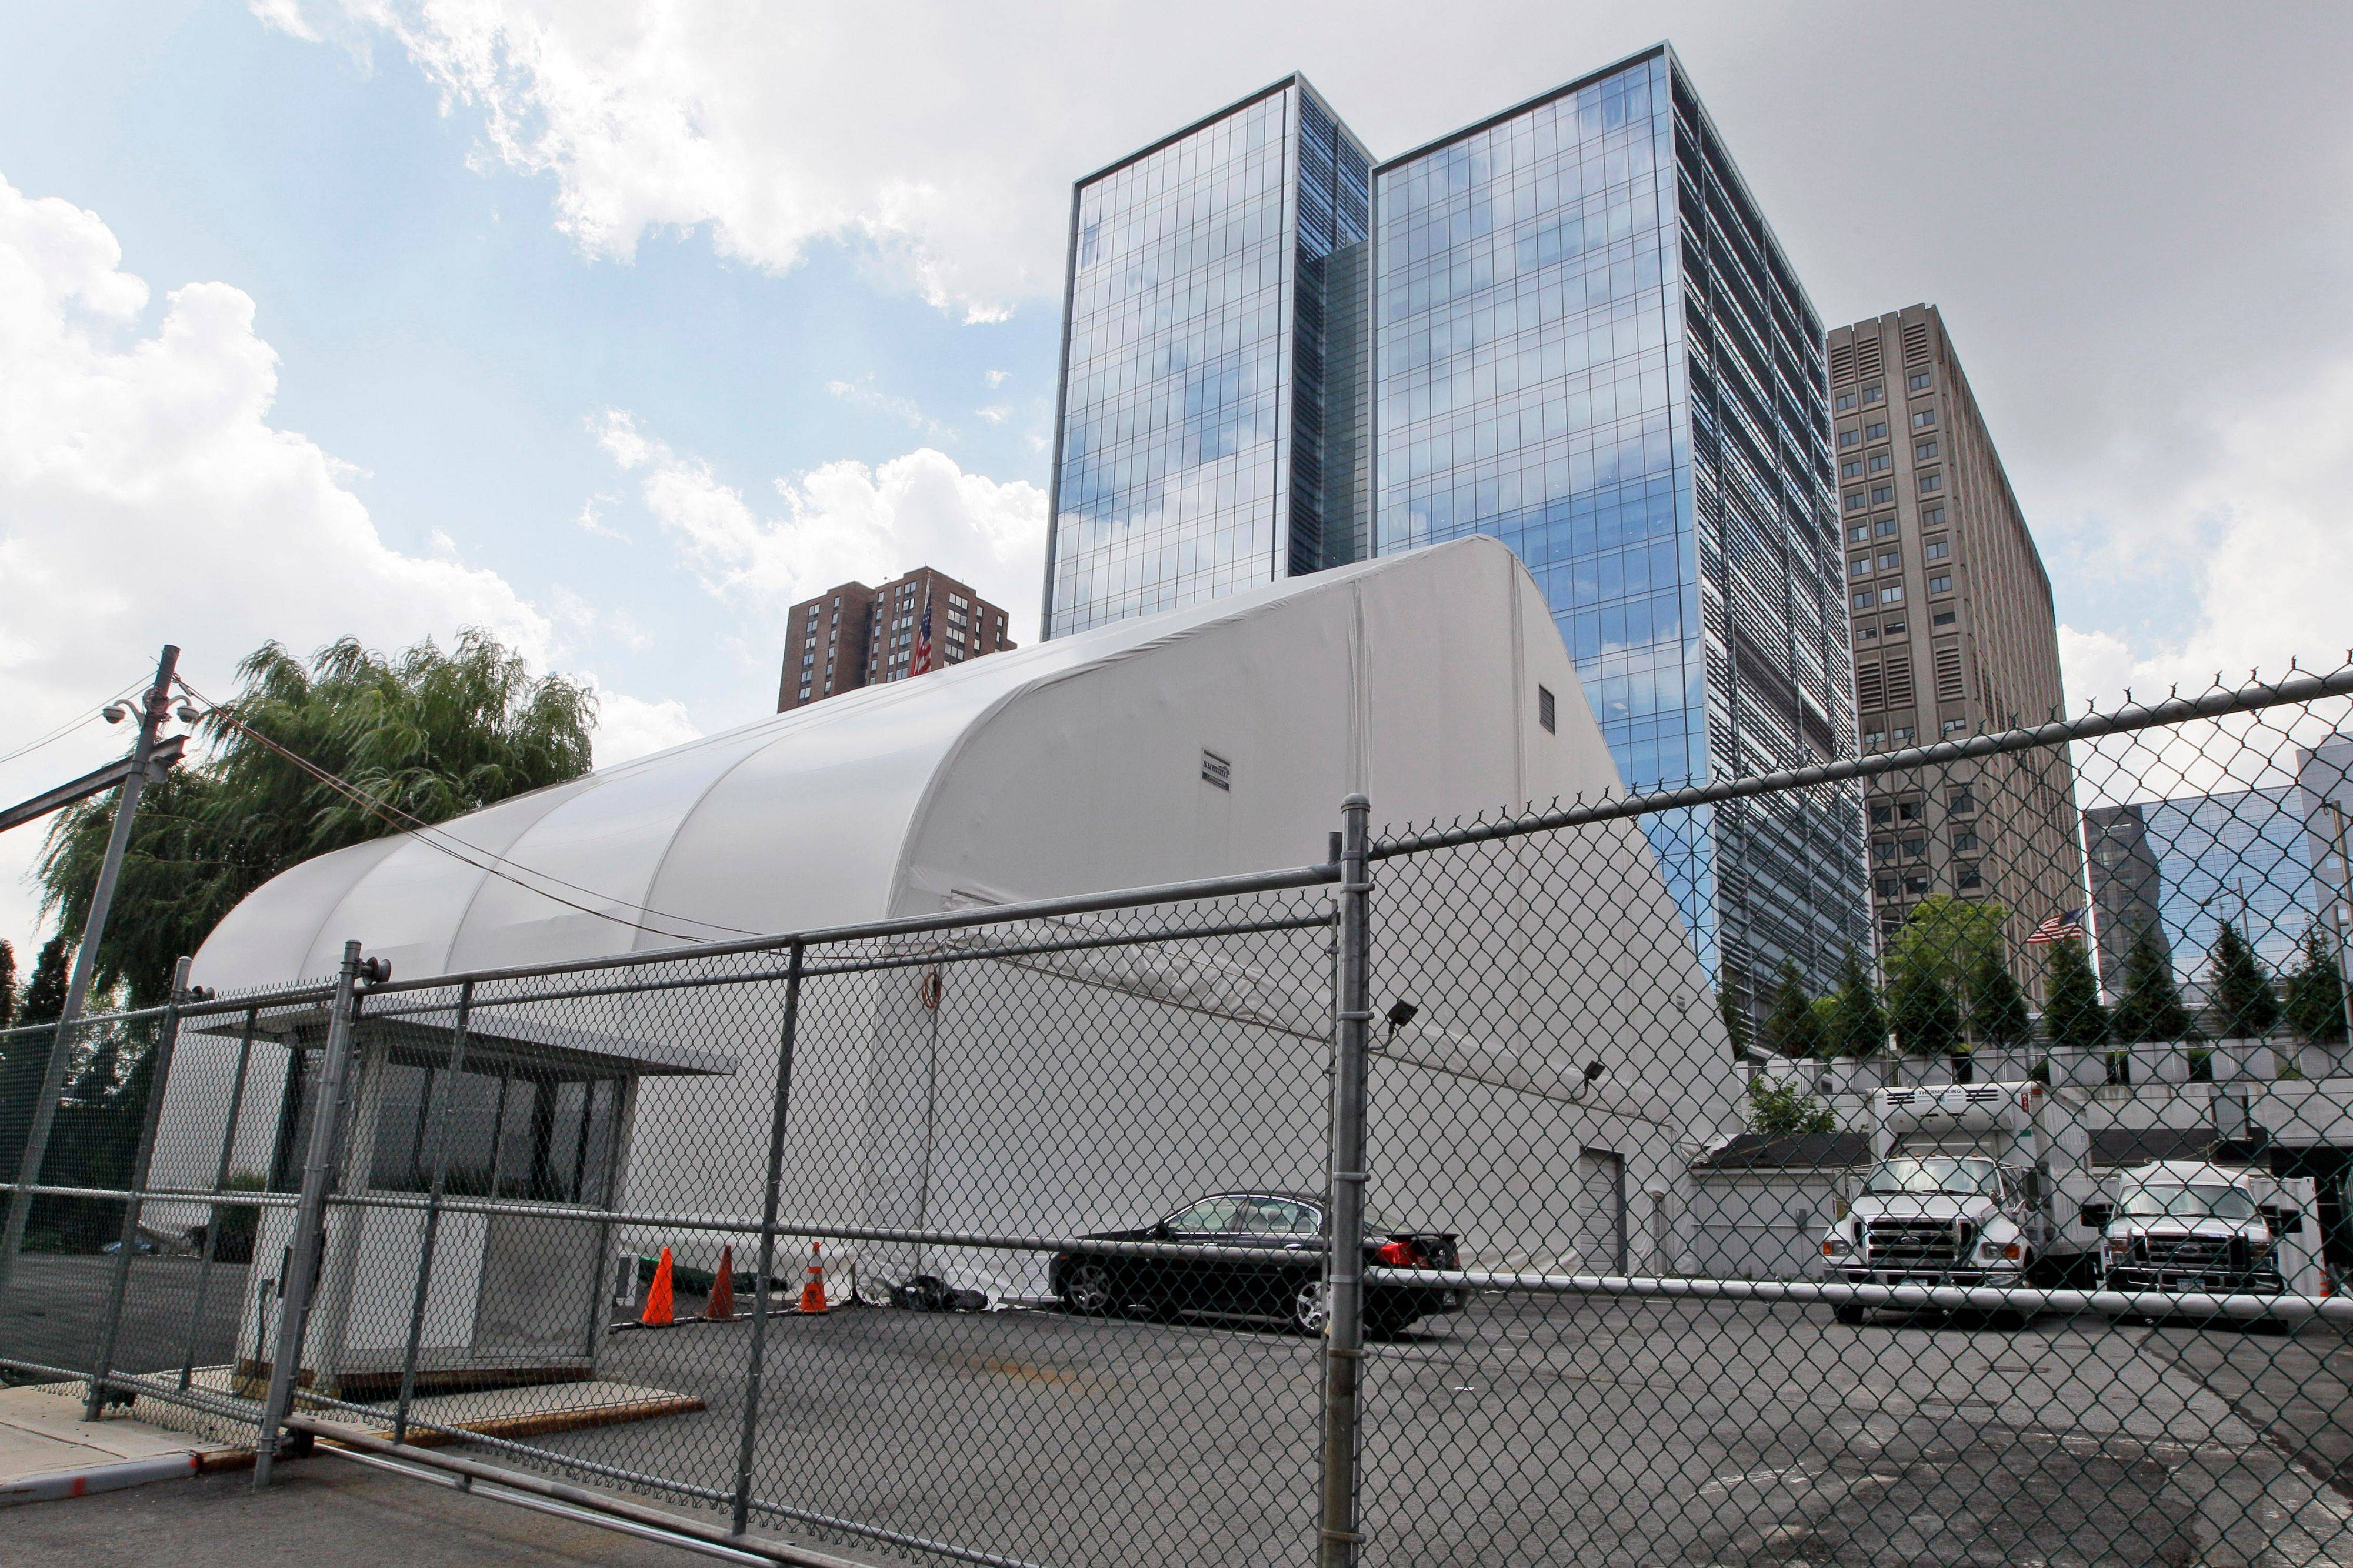 This tent houses a chapel and a storage area for the remains of victims of the attacks on the World Trade Center in New York.